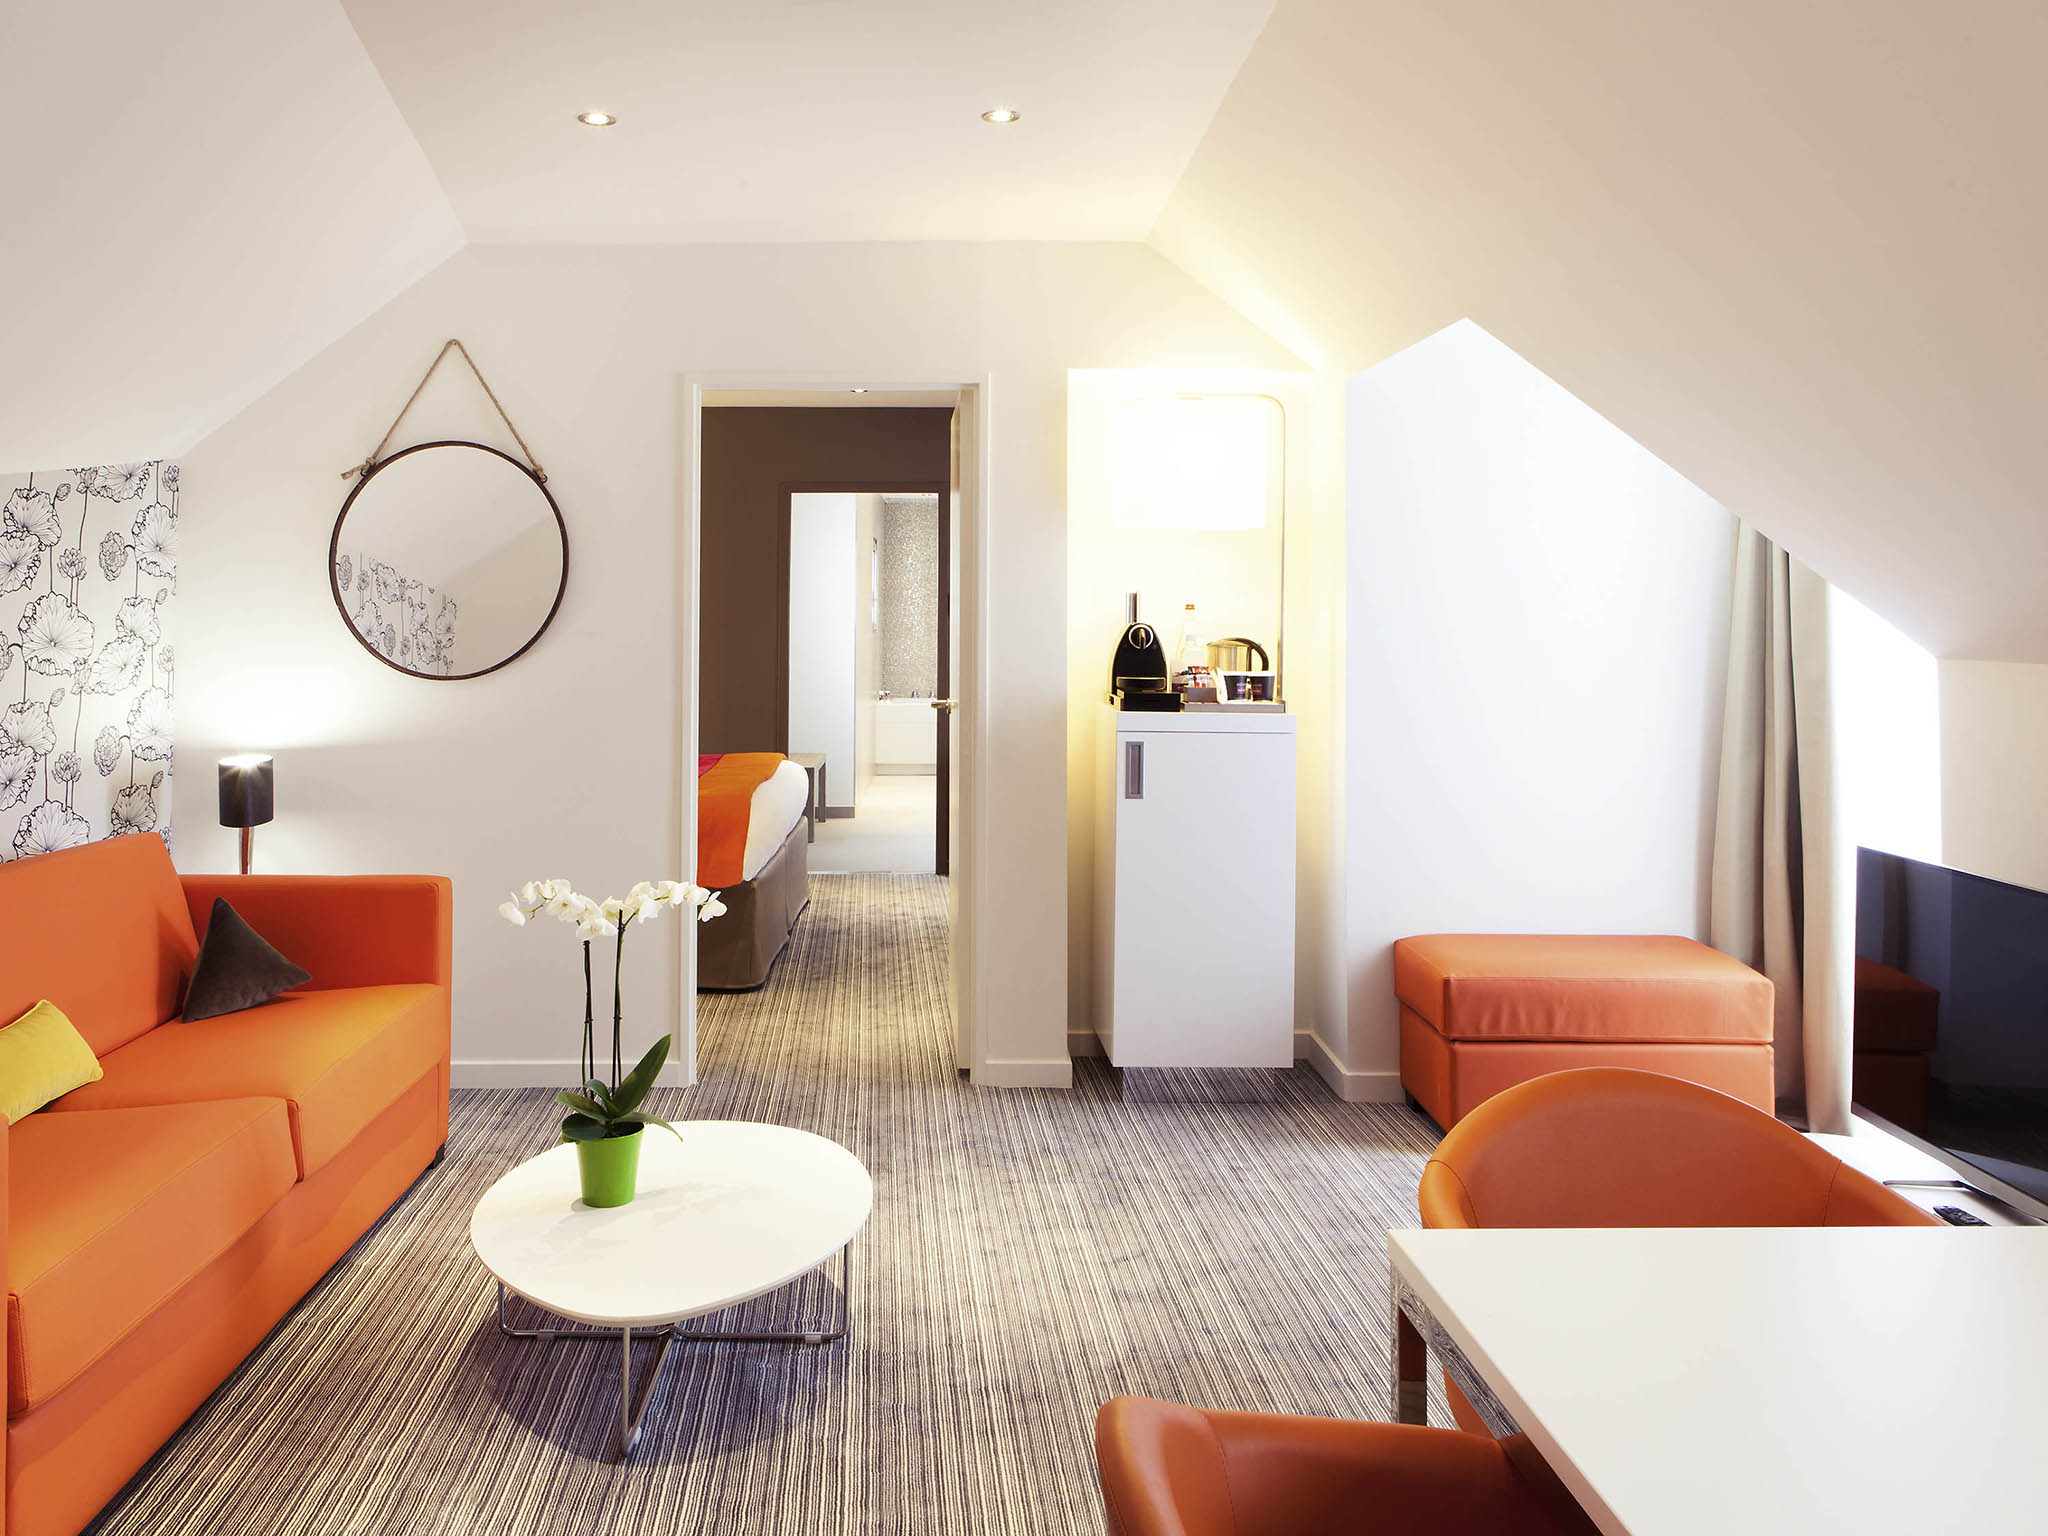 Hotel in nantes mercure nantes centre grand htel rooms mercure nantes centre grand htel solutioingenieria Image collections